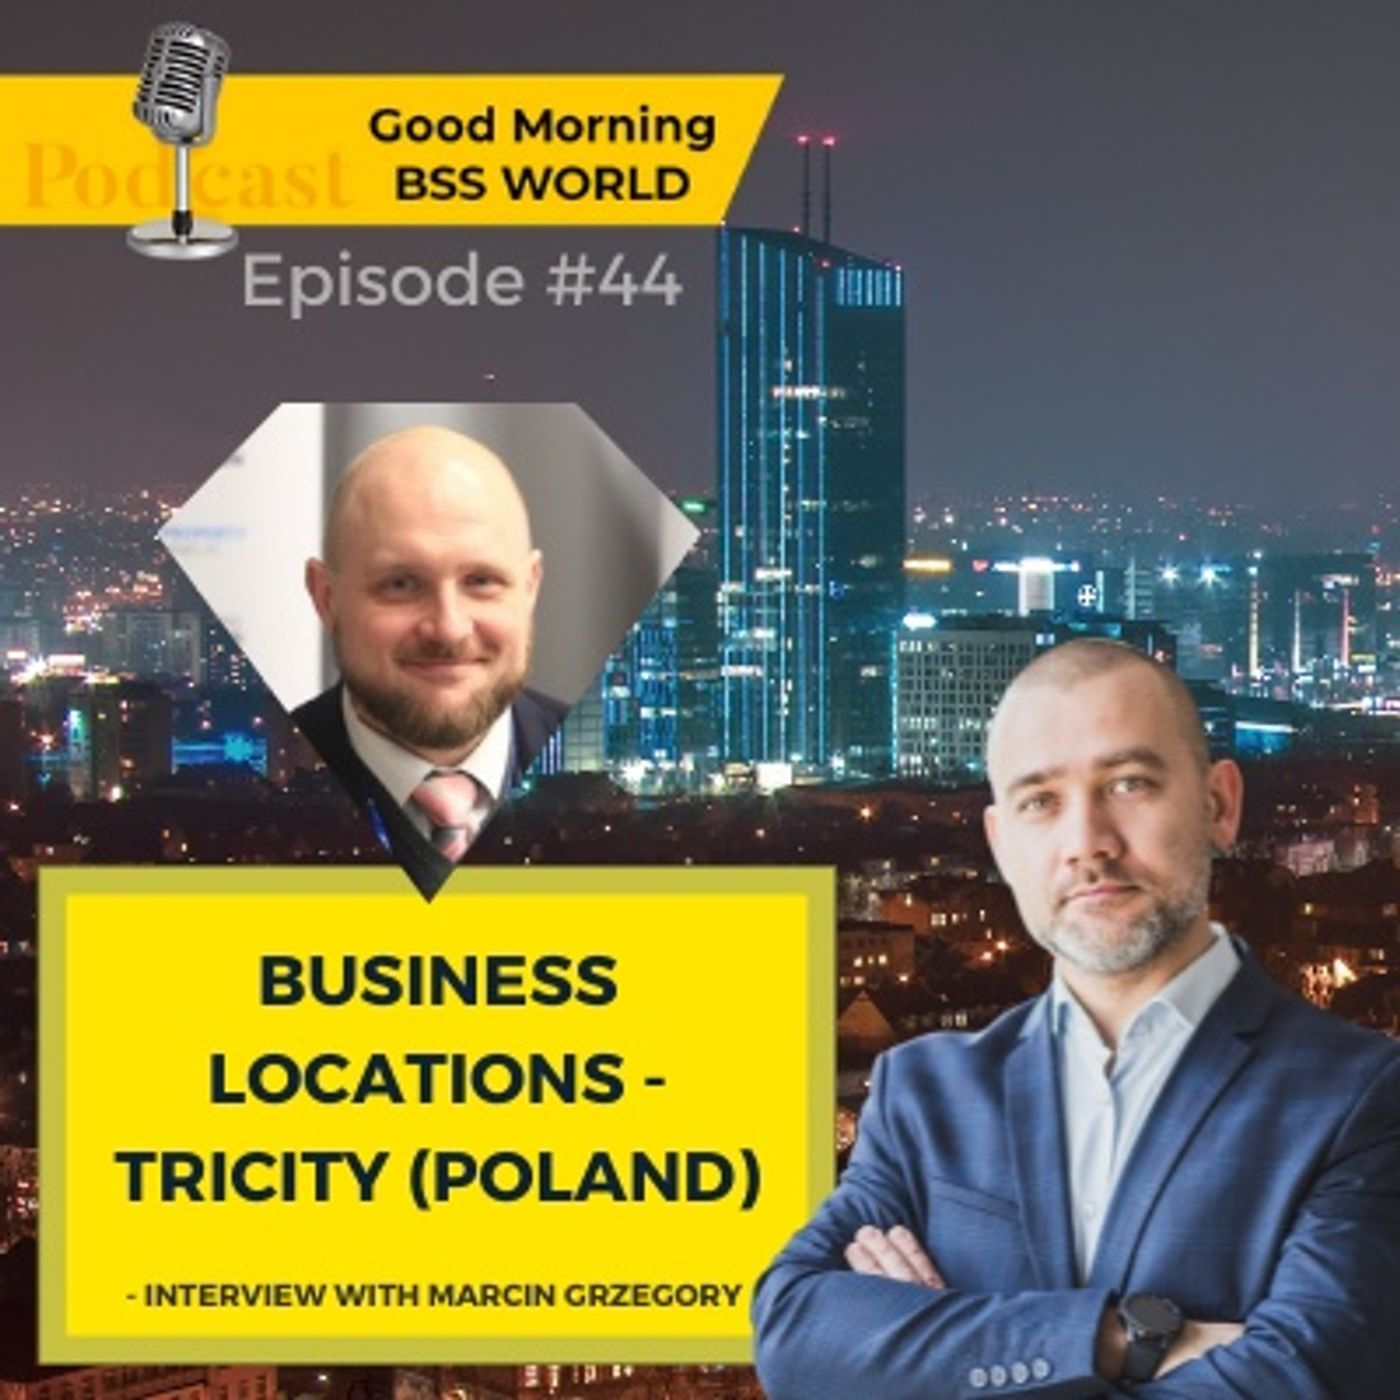 #44 Global locations for BPO and SSC centers - TRICITY in POLAND